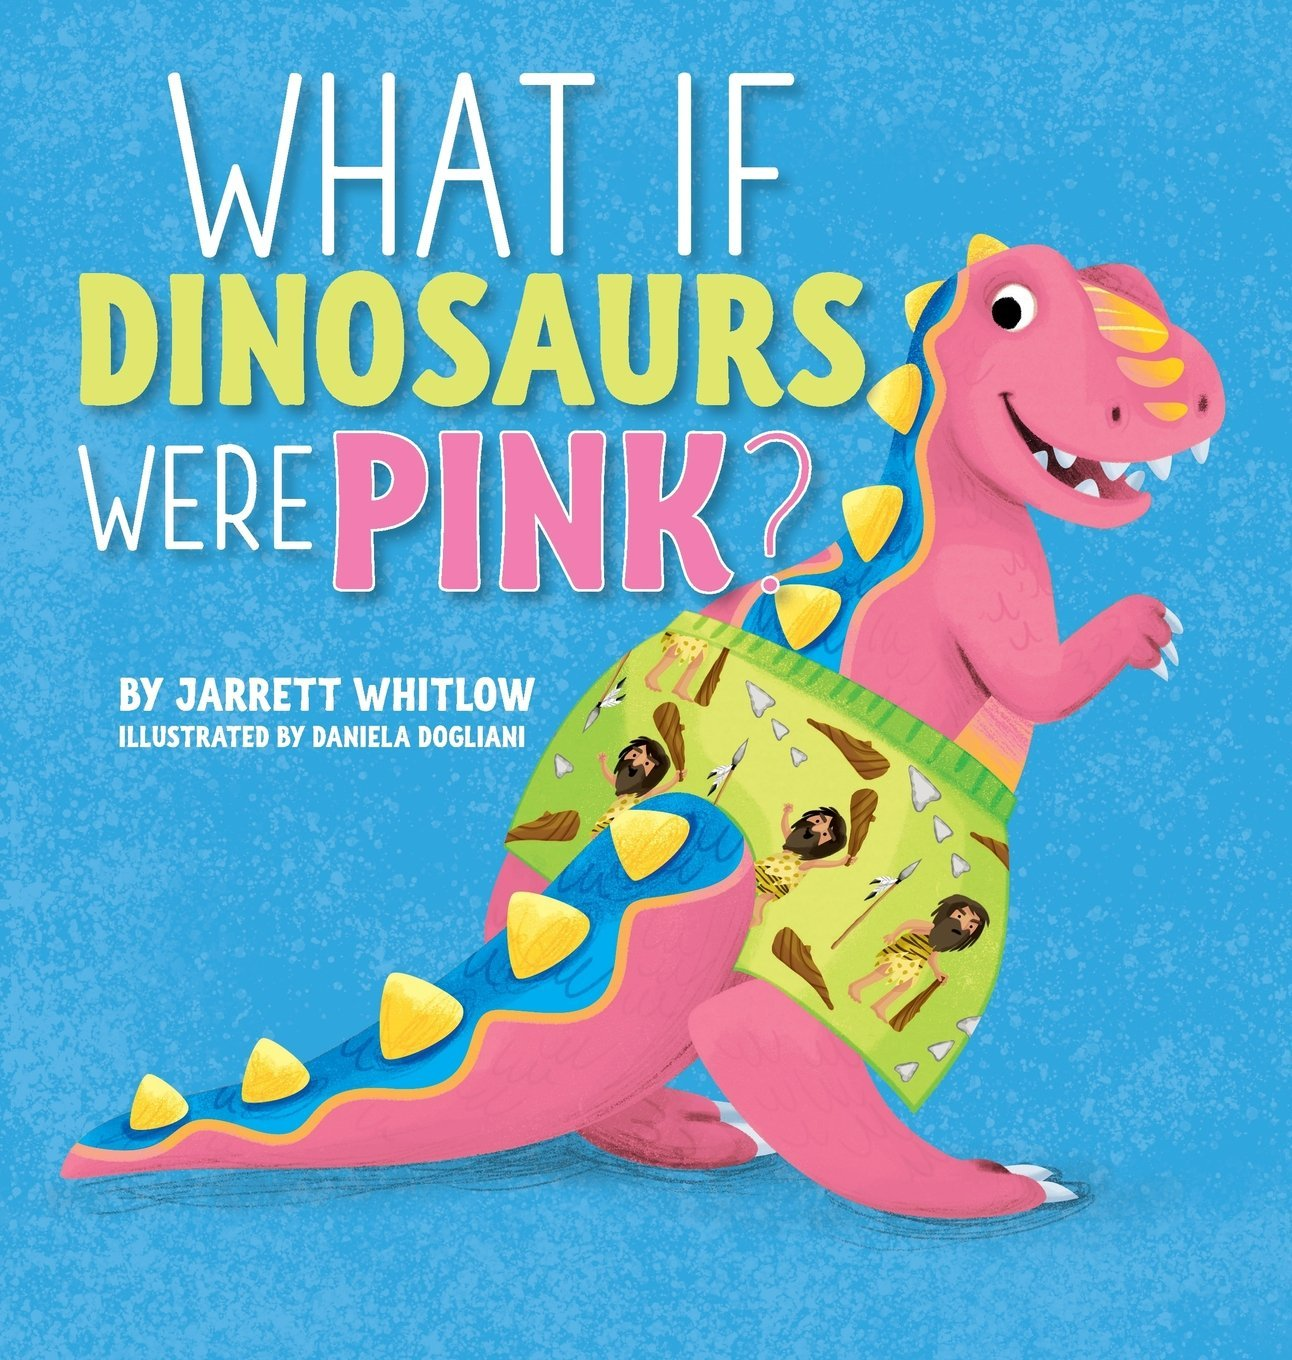 Amazon com: What If Dinosaurs Were Pink? (9781943258840